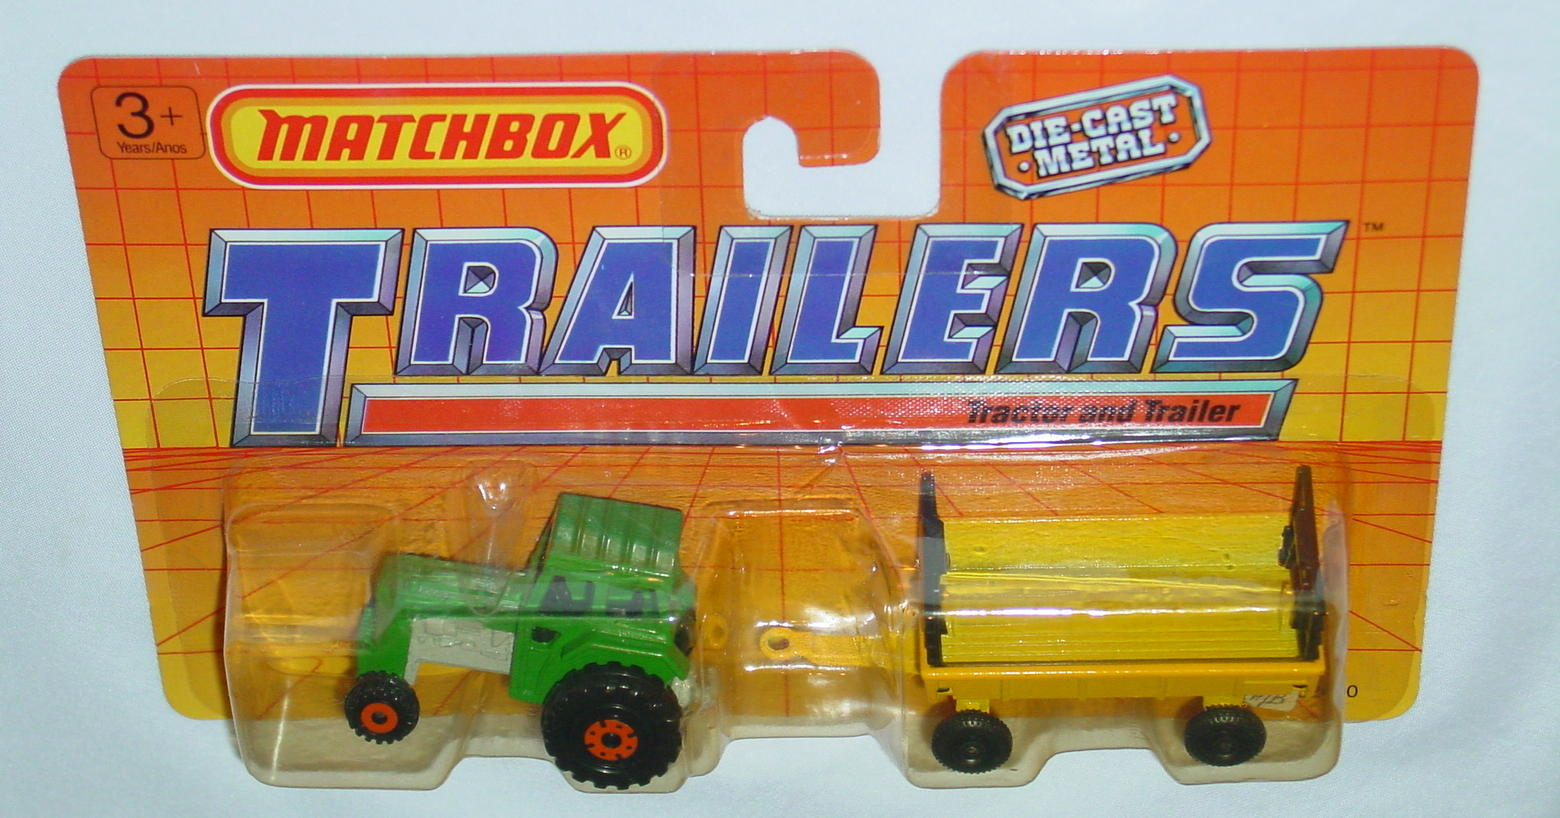 Twin Pack 108 A 3 - green 46C15 tractor yellow Hay trailer C9+ blue checkerscard